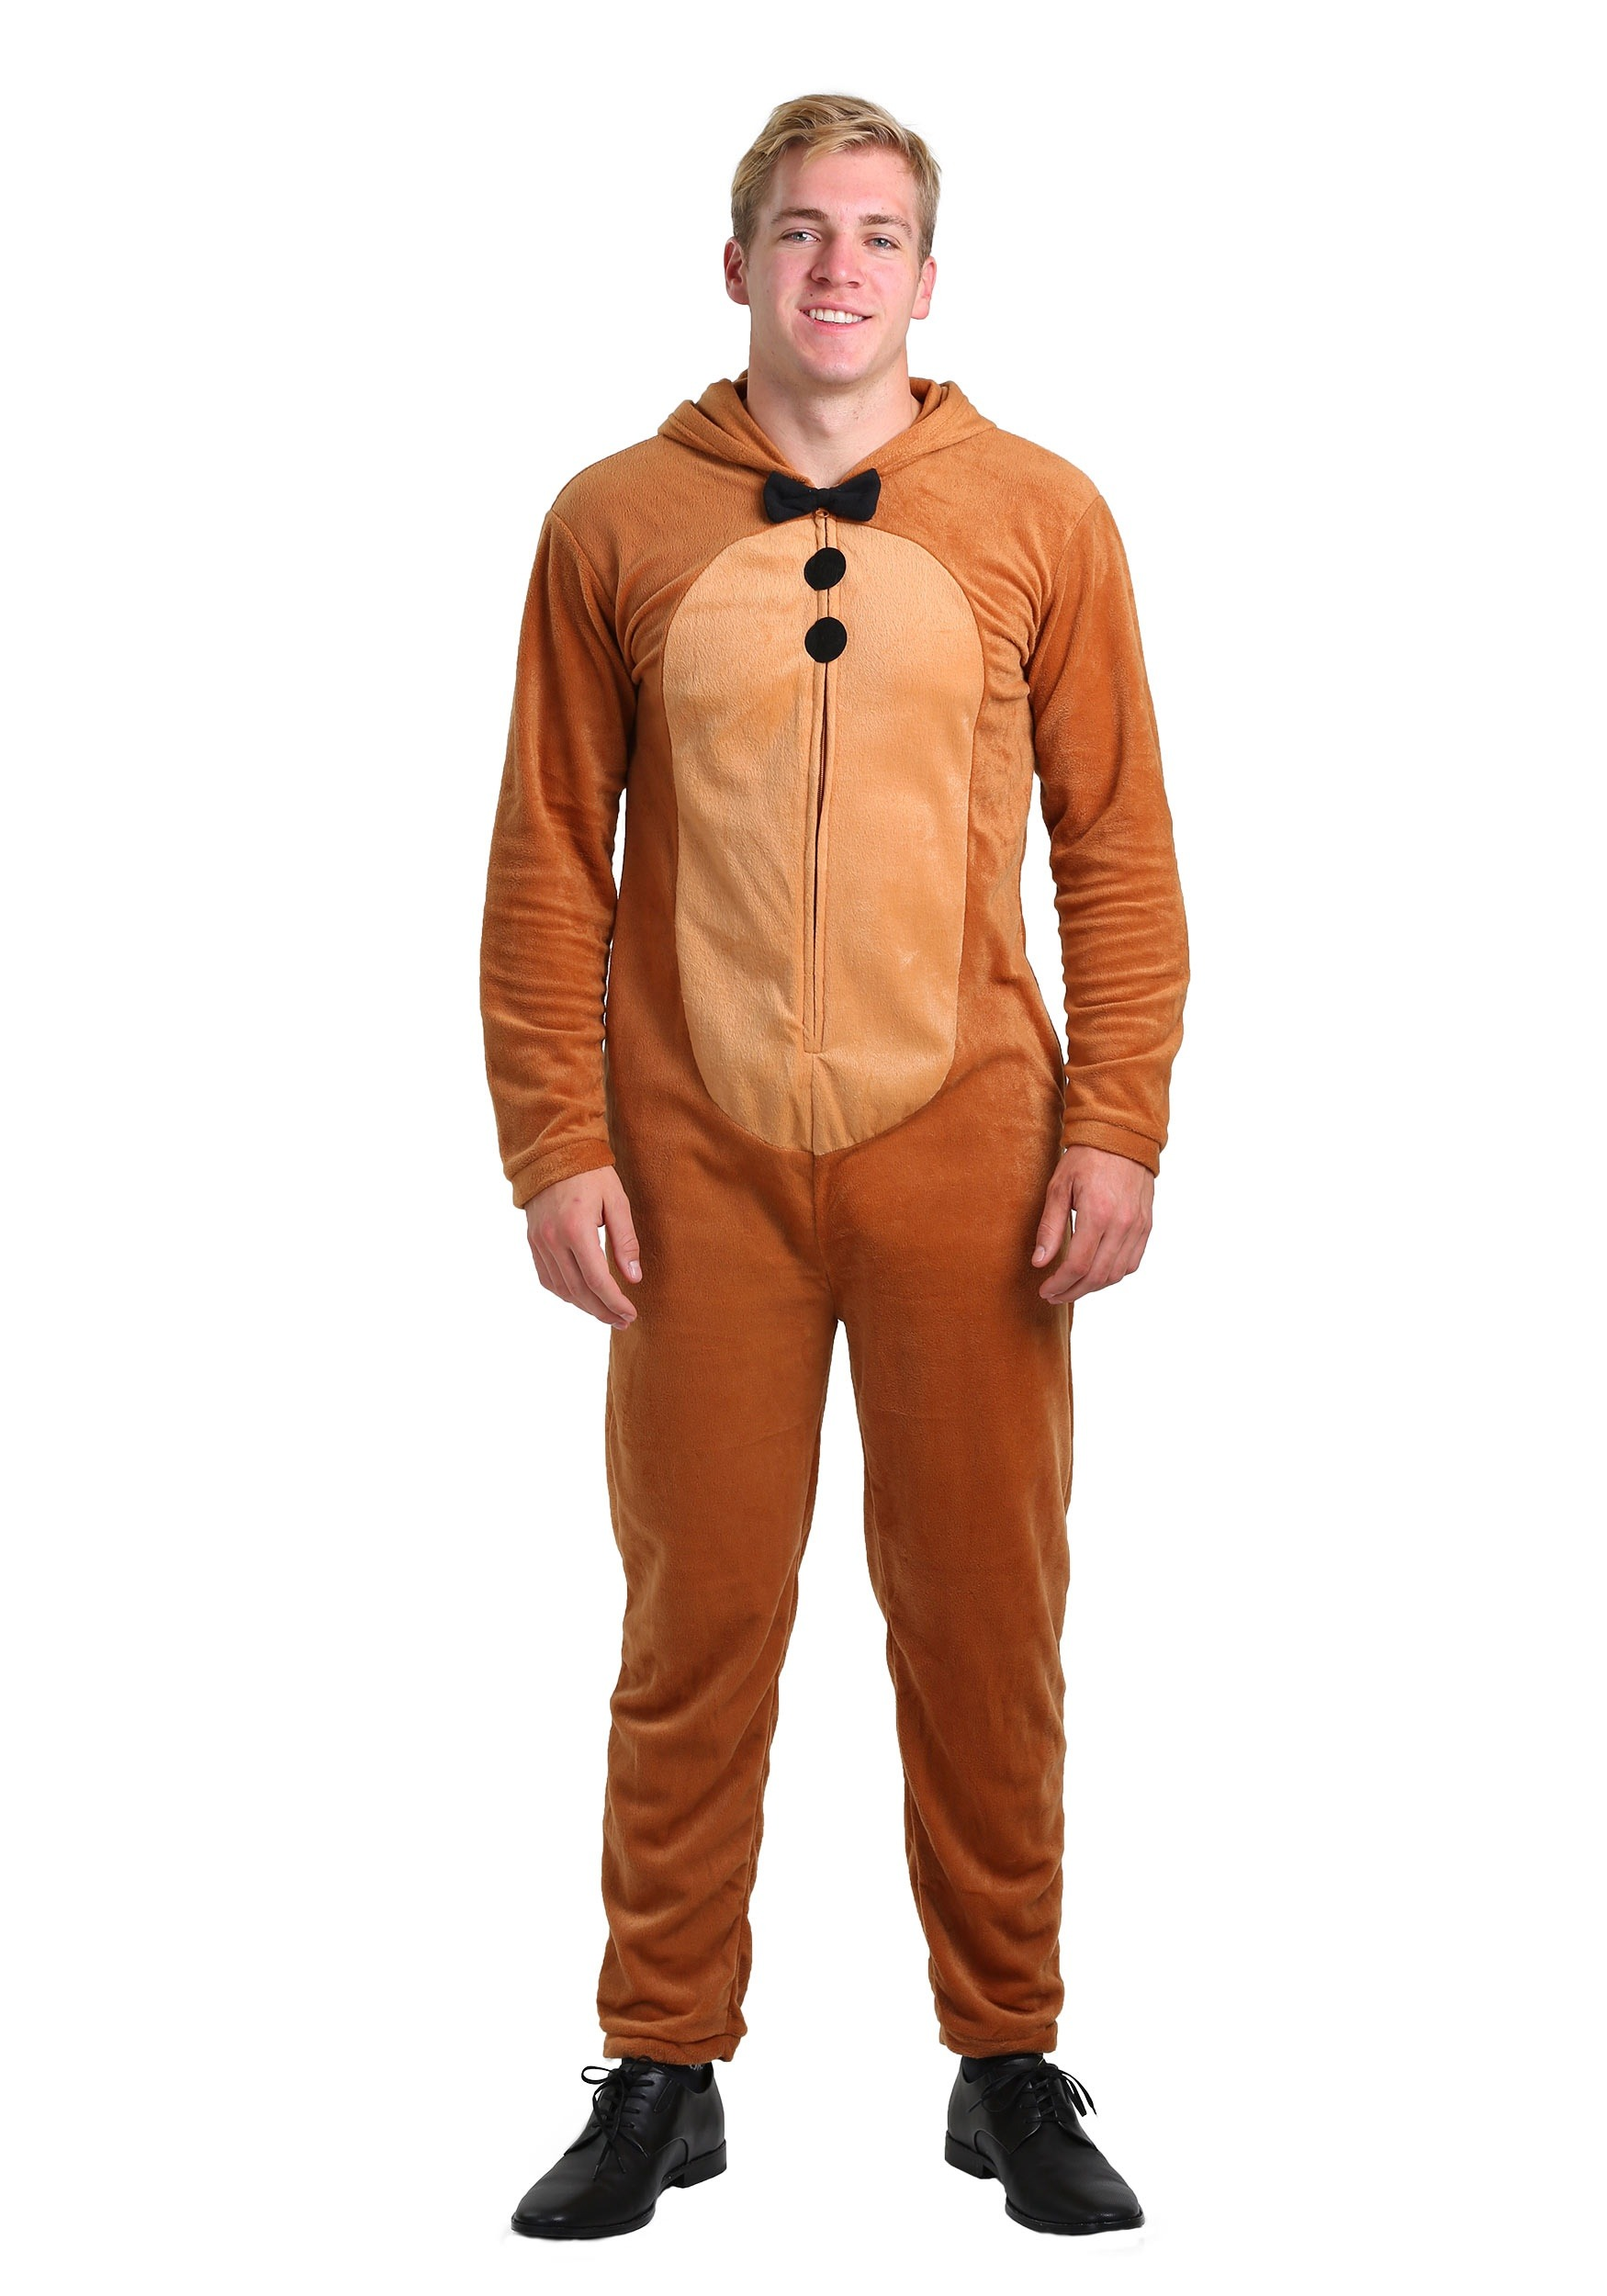 Five Nights At Freddys Union Suit For Men